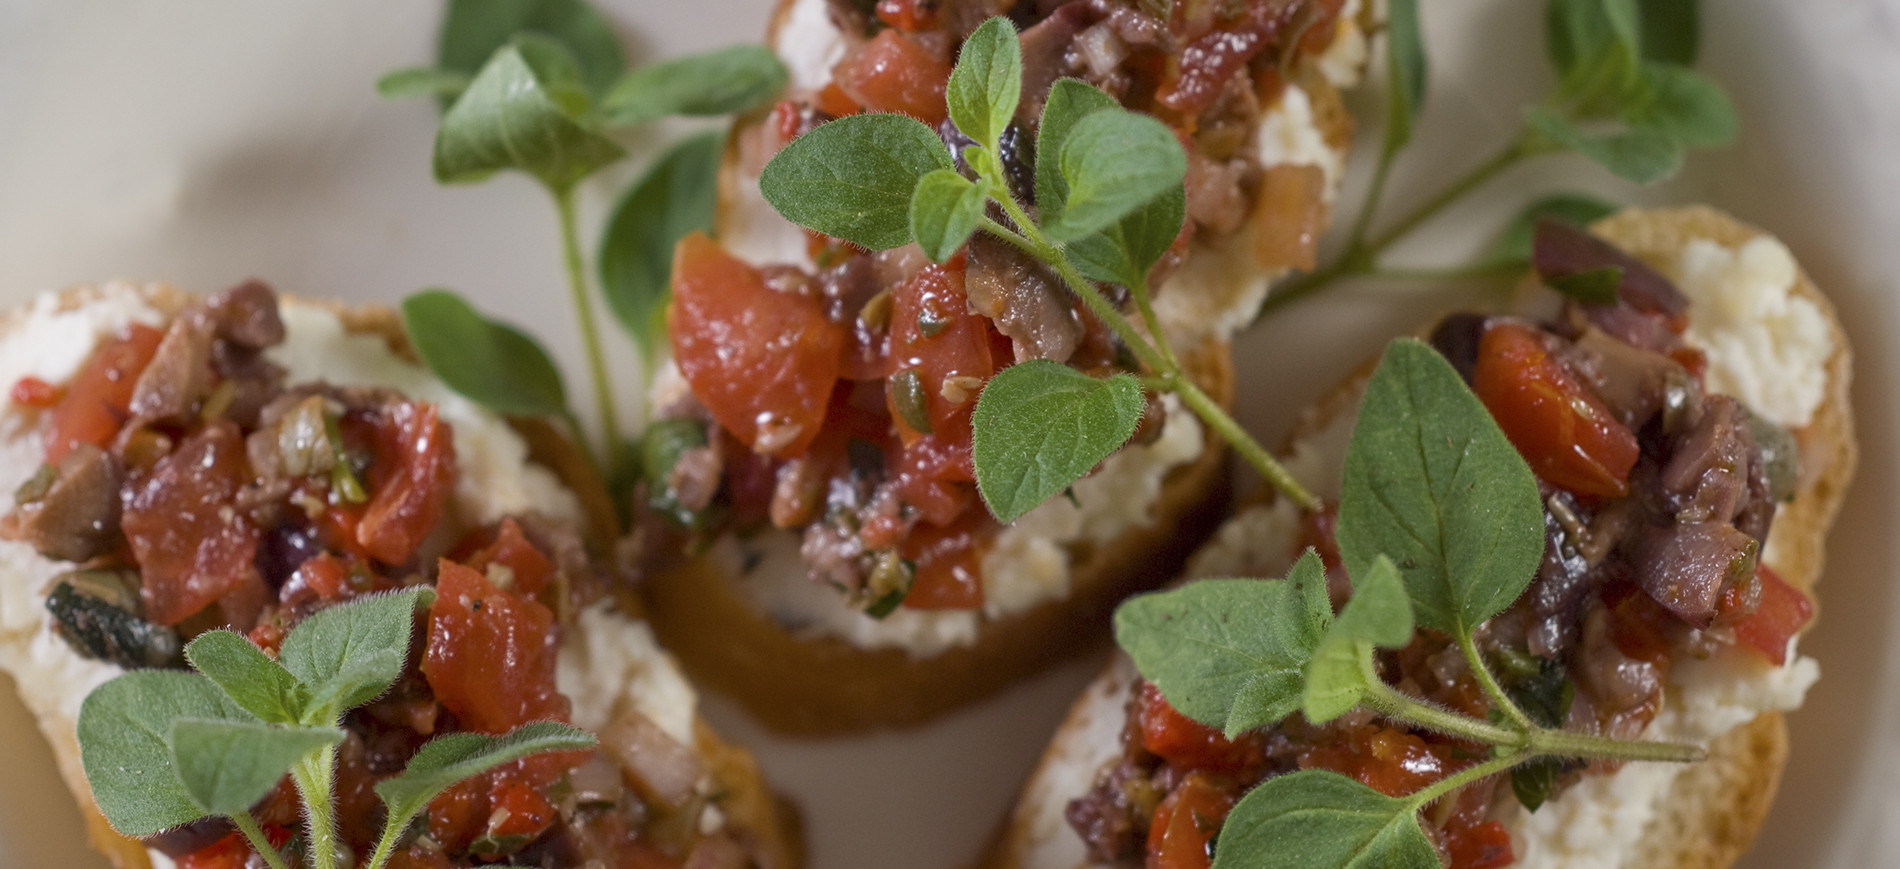 Three pieces of bruschetta topped with chopped tomato & oregano garnish